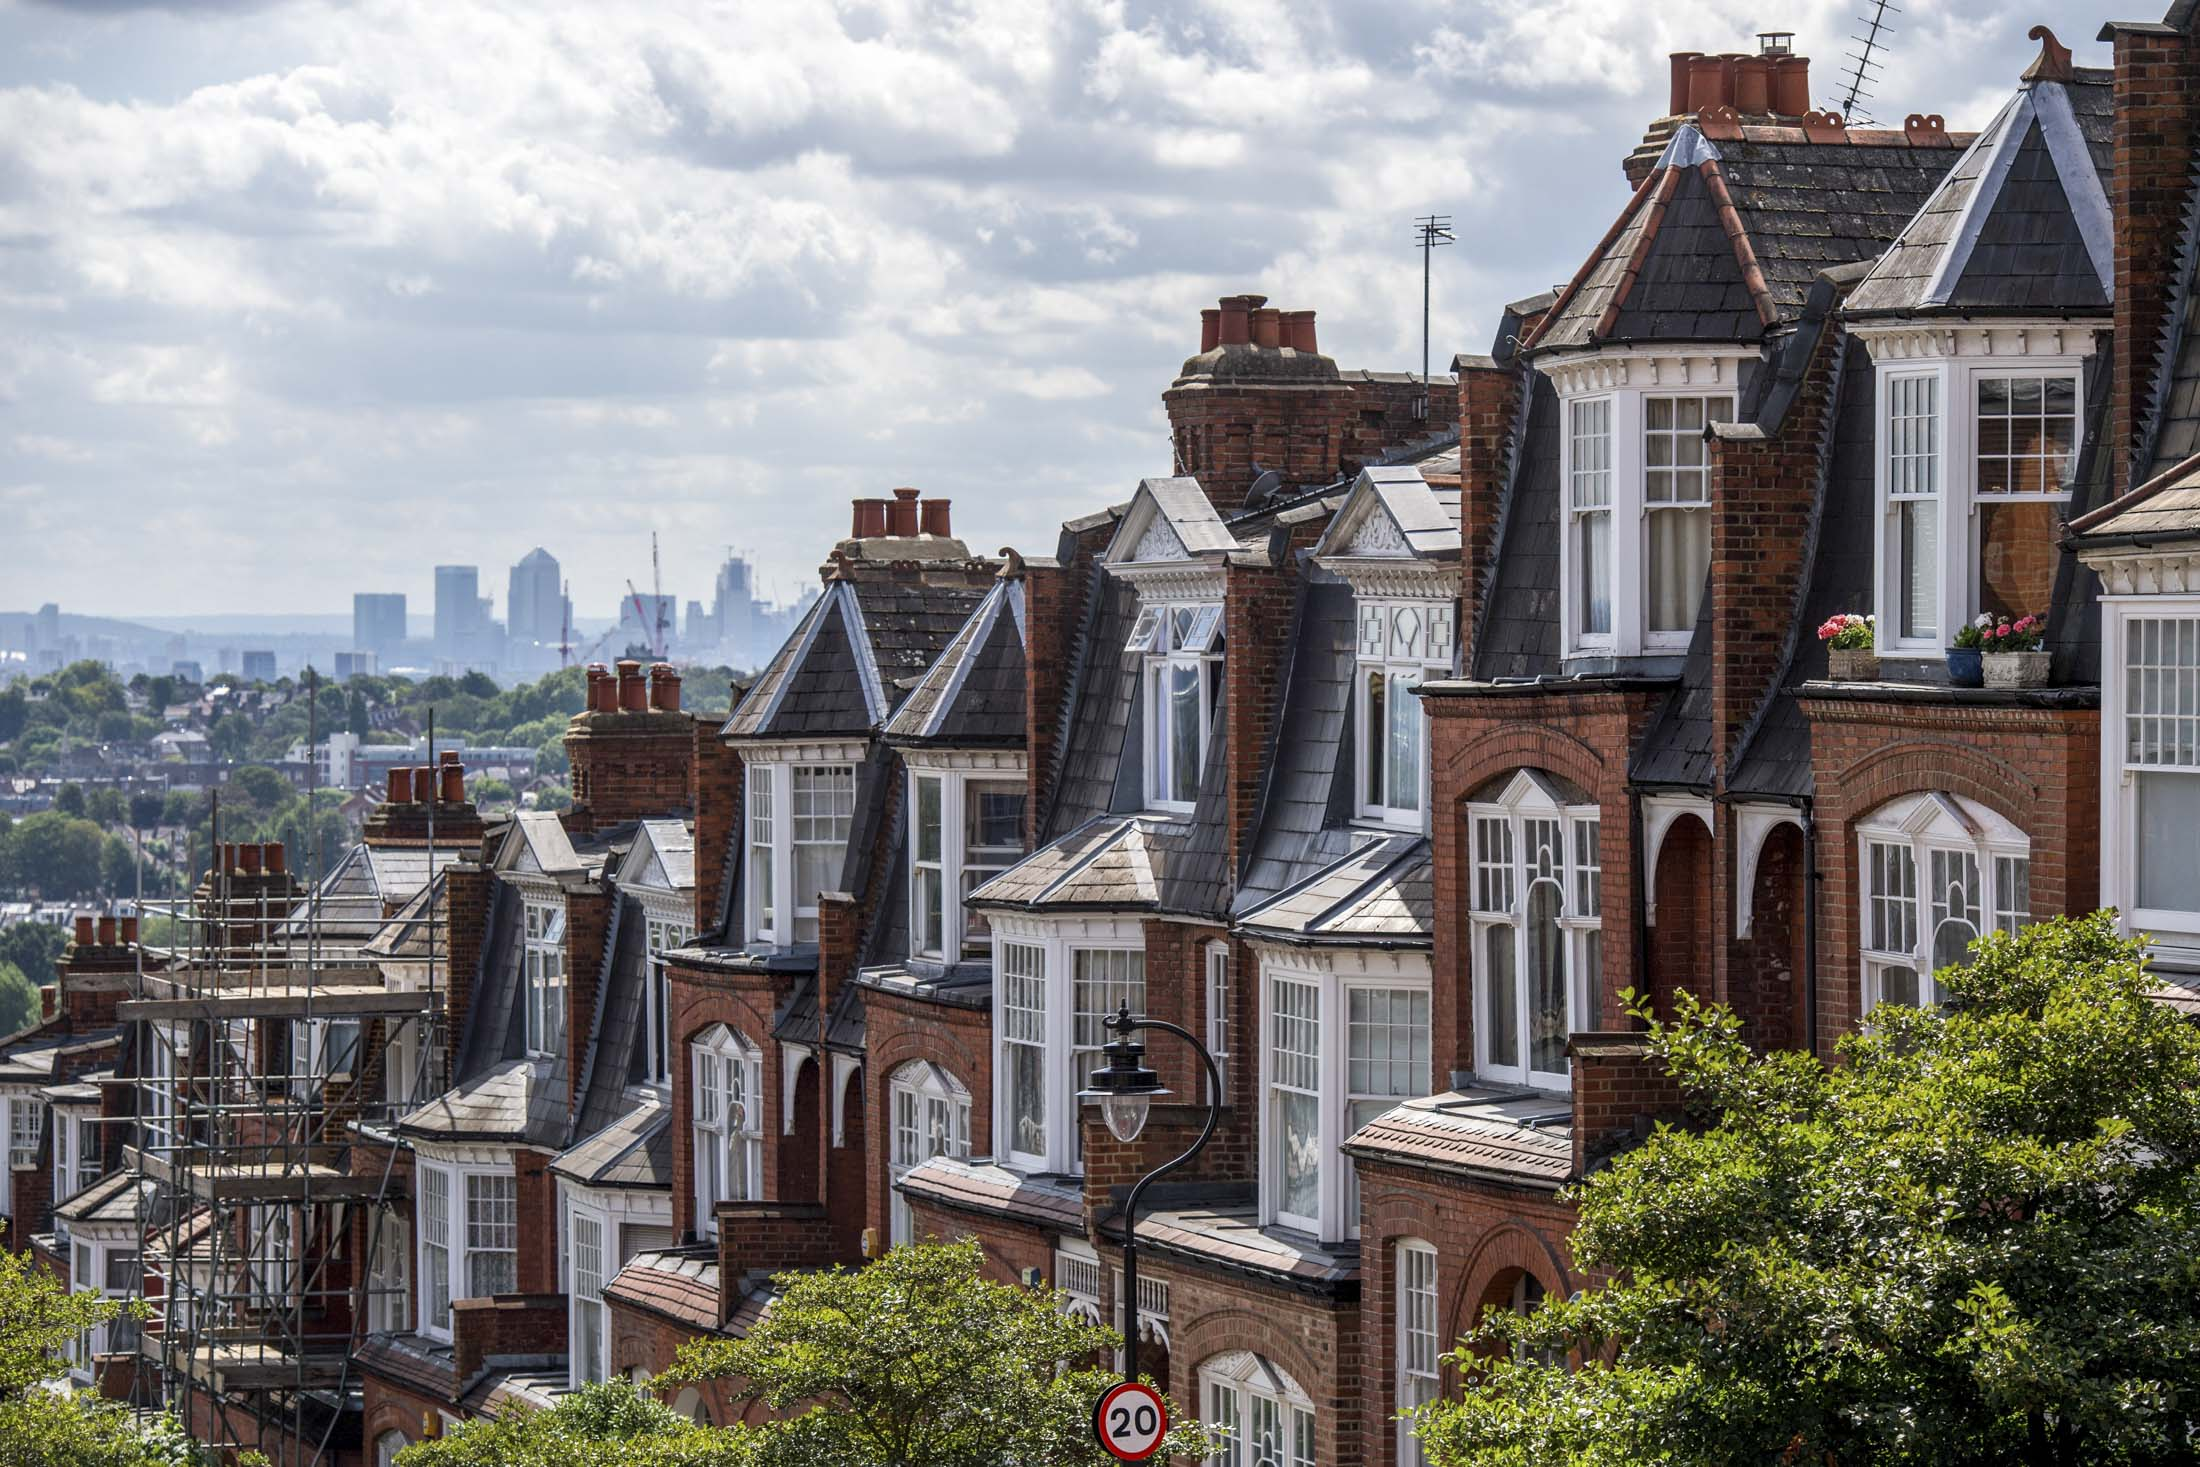 Brexit Could Spur U.K. Housing Market, Says Rightmove's Shipside